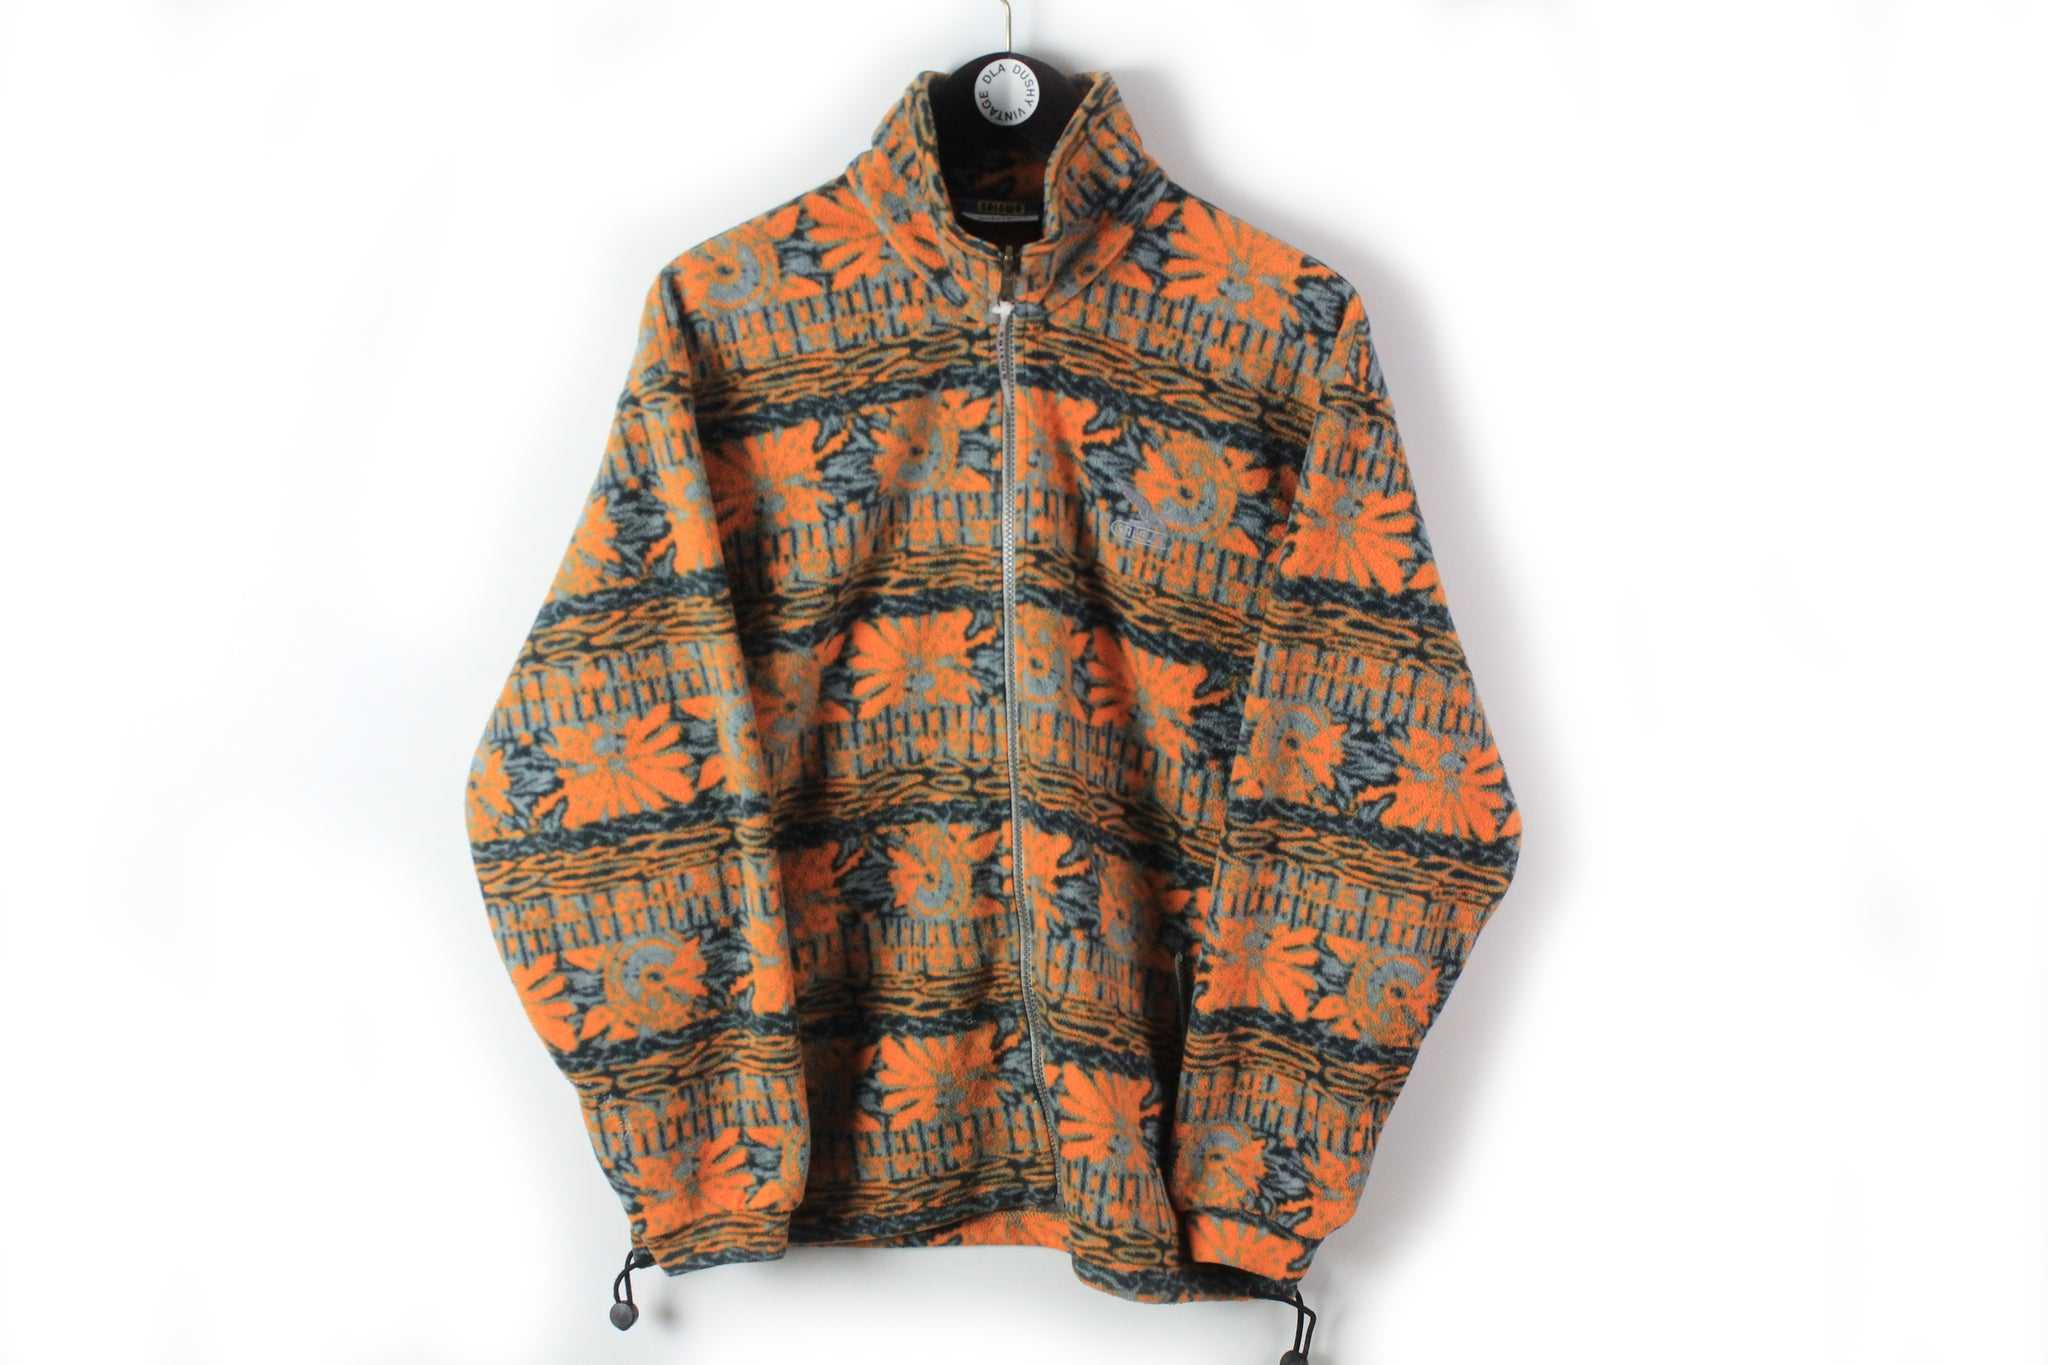 Vintage Salewa Fleece Full Zip Medium orange outdoor multicolor 90s ski sweater